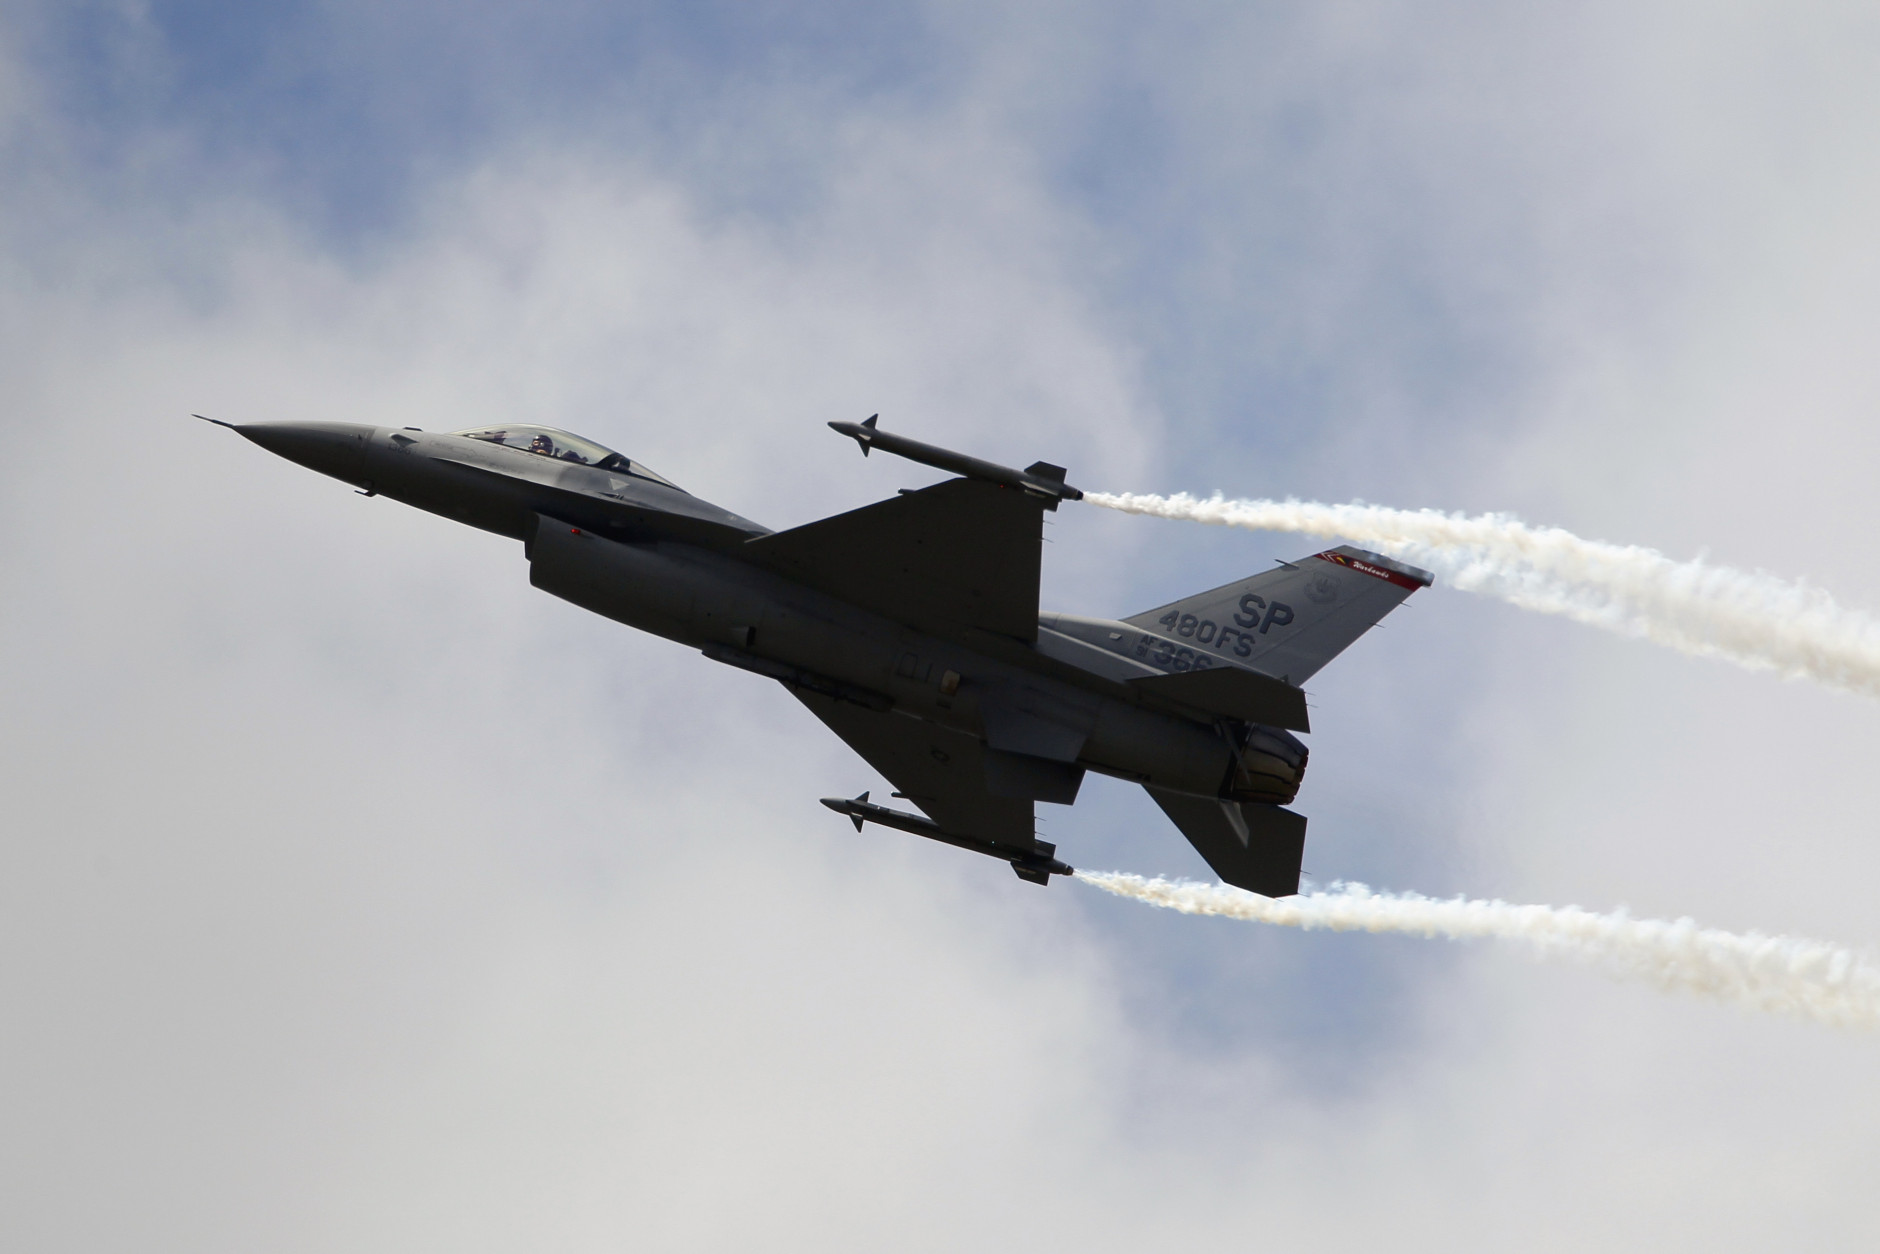 FILE - In this Wednesday June 22, 2011, file photo, a Lockheed Martin F-16 Jet fighter performs its demonstration flight at the 49th Paris Air Show at Le Bourget airport, east of Paris. Lockheed Martin is separating its information systems and global solutions unit, combining it with the engineering company Leidos so that it can focus on its remaining aerospace and defense business, the company announced Tuesday, Jan. 26, 2016. (AP Photo/Francois Mori, File)